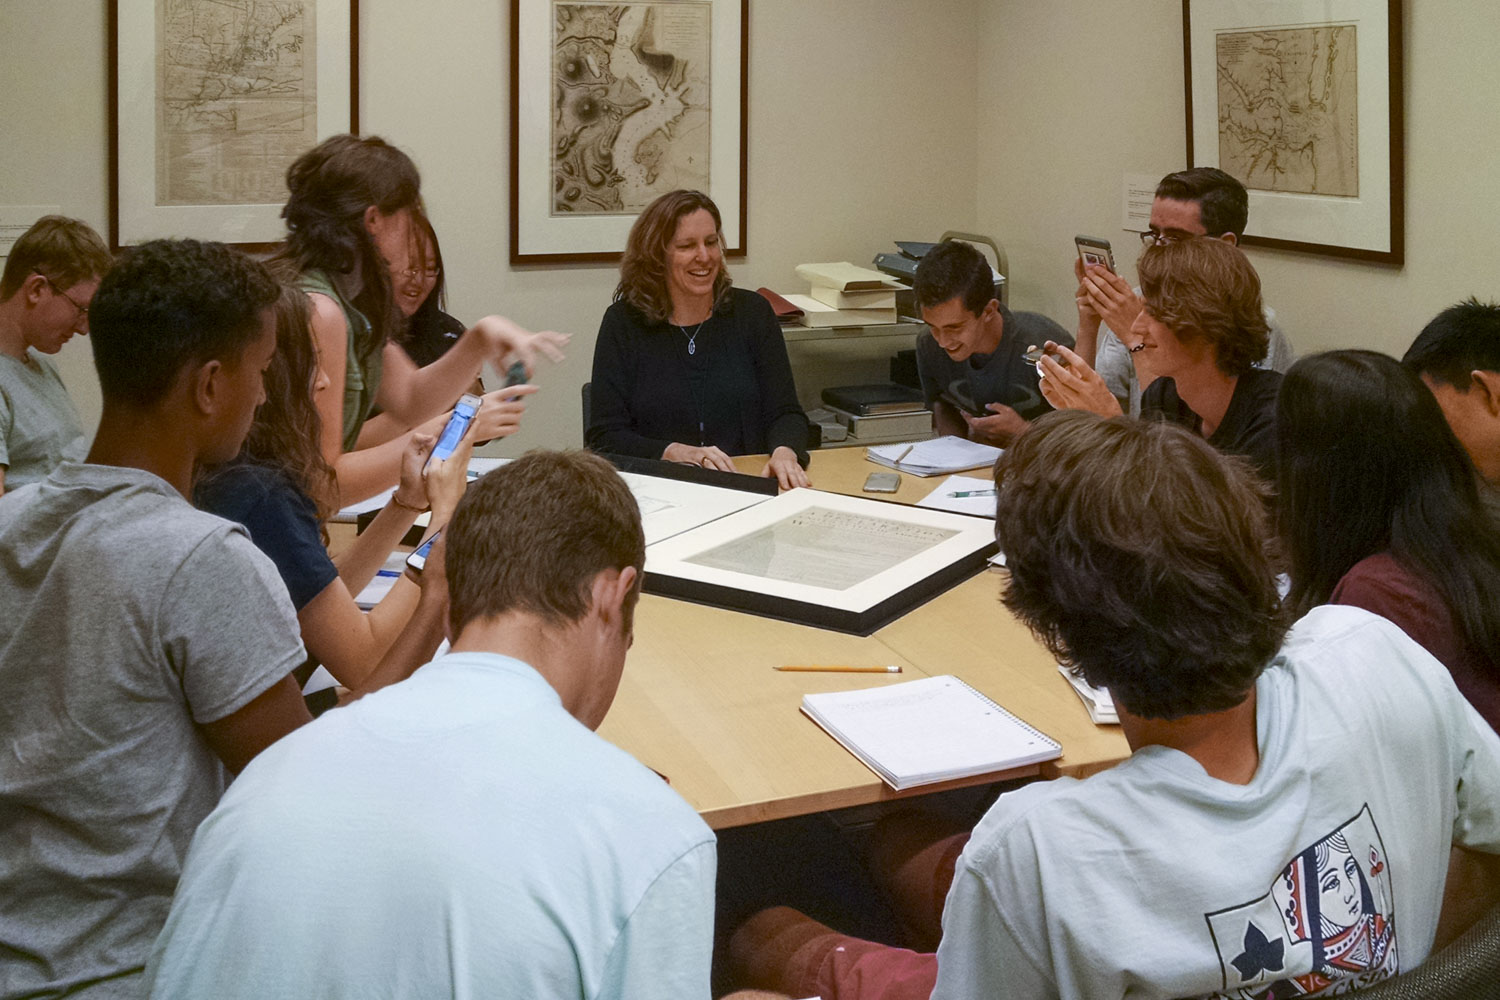 When Special Collections curator Molly Schwartzburg showed students one of the first-known printings of the Declaration of Independence, many took out their phones to take photos of the historic document.